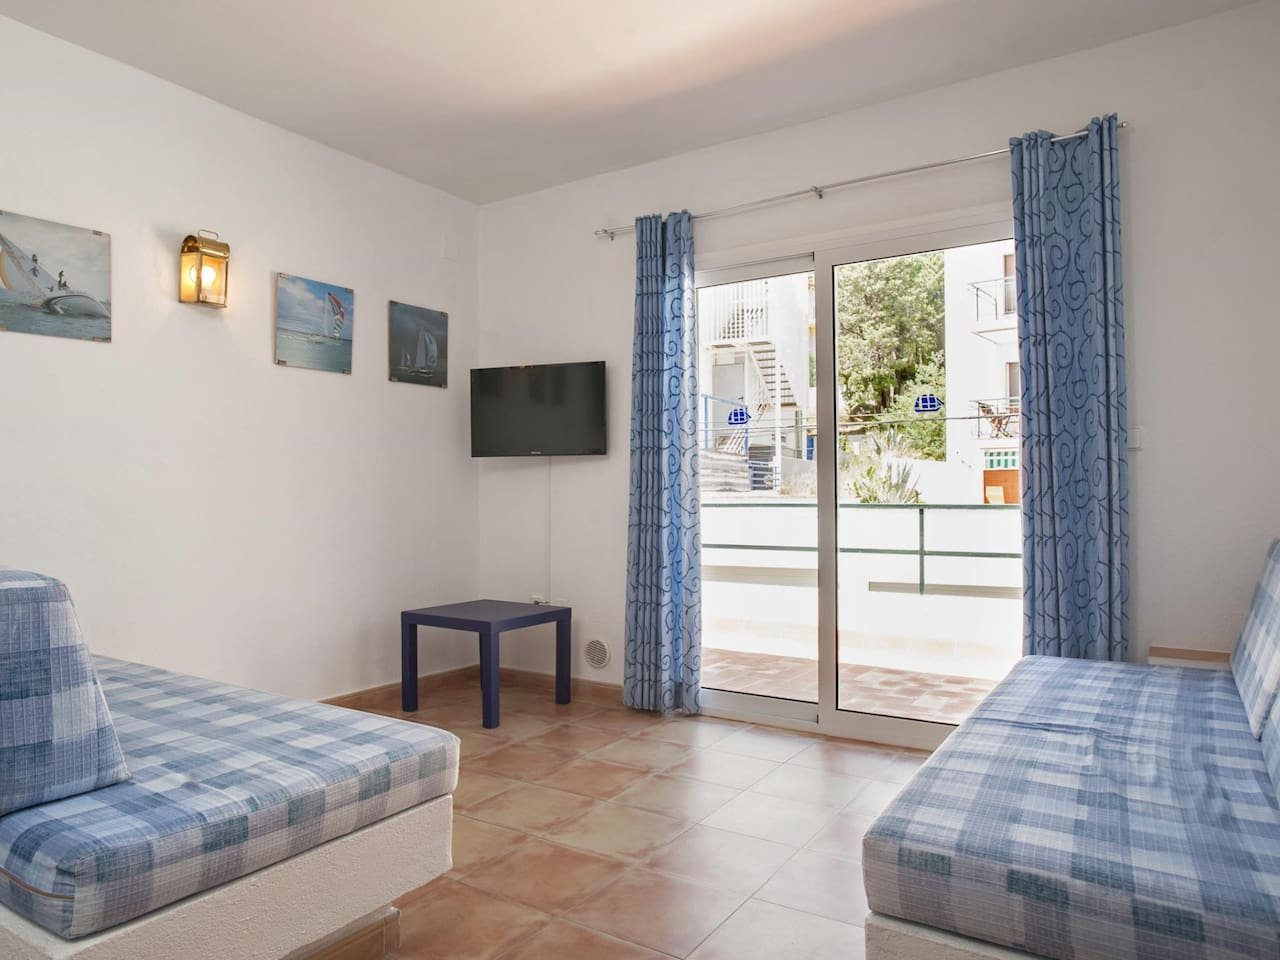 Apartment Studio located 50m from the beach of Canyelles Petites, Roses